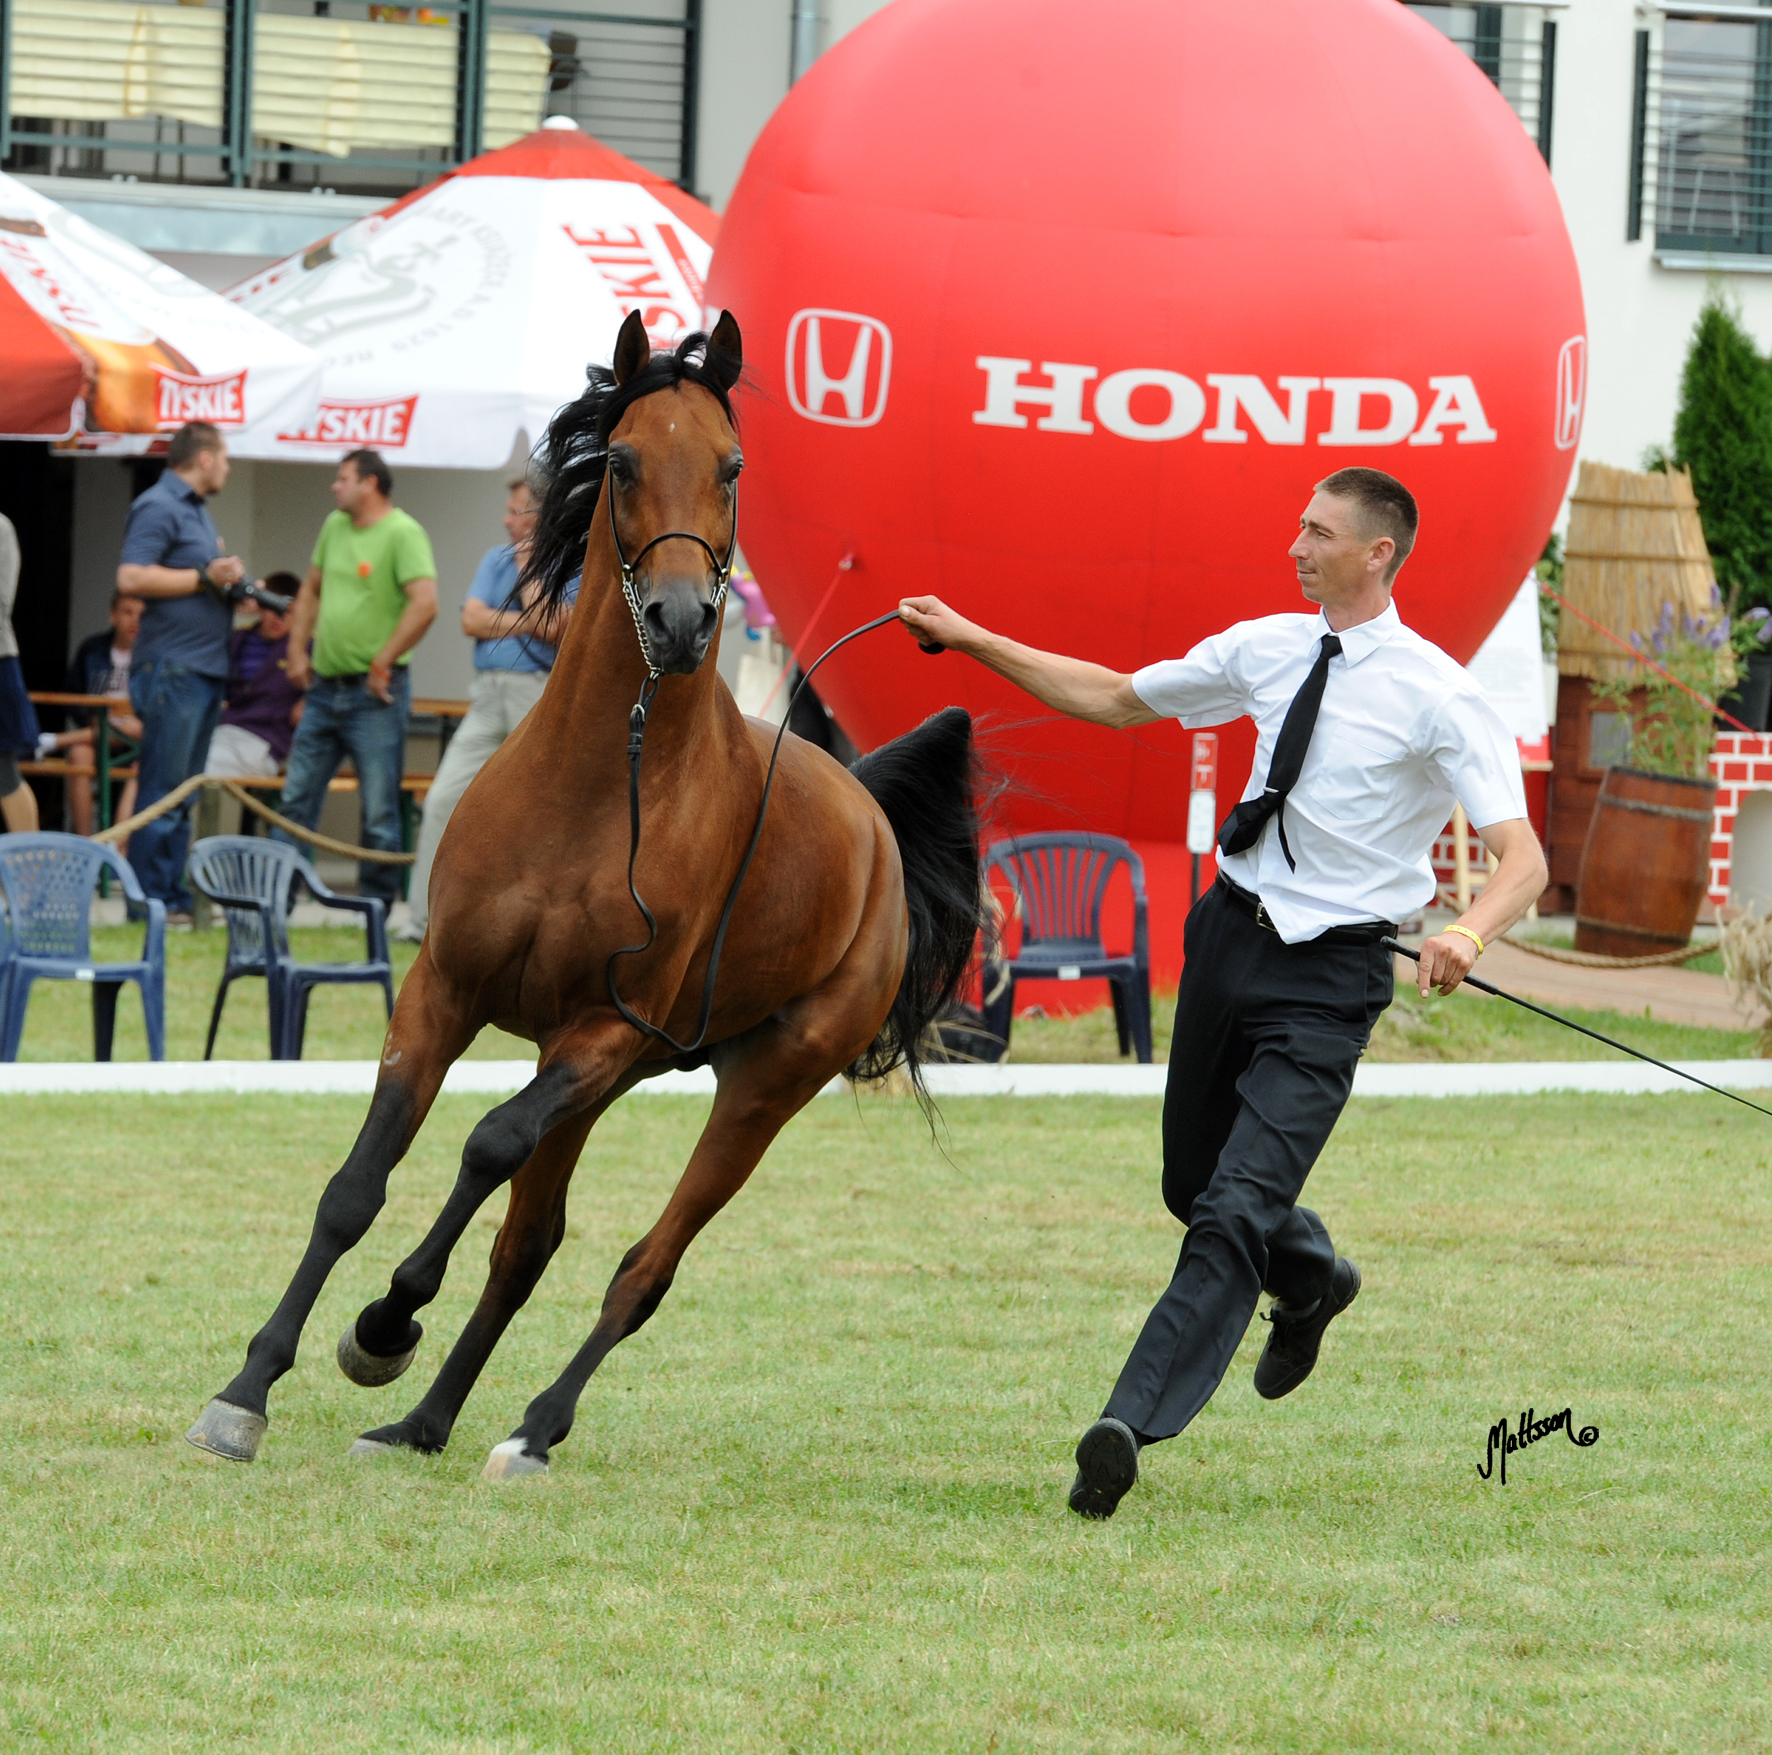 Wadi Nur at the Polish National Show in 2012 shown by Piotr Dwojak